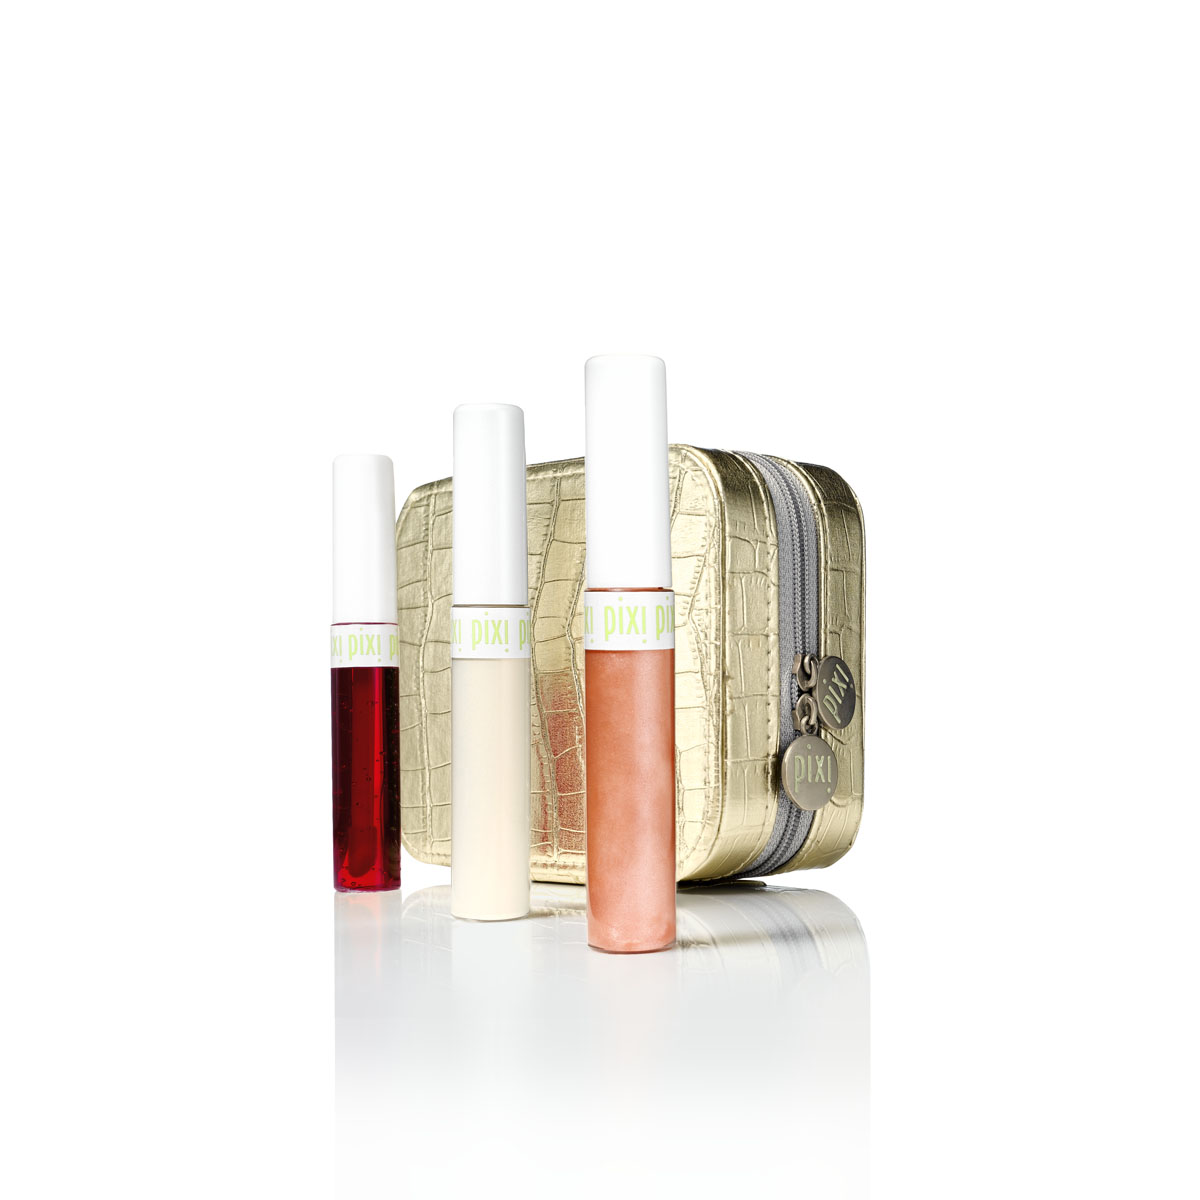 NP Set Lip Gloss Compact ($12).